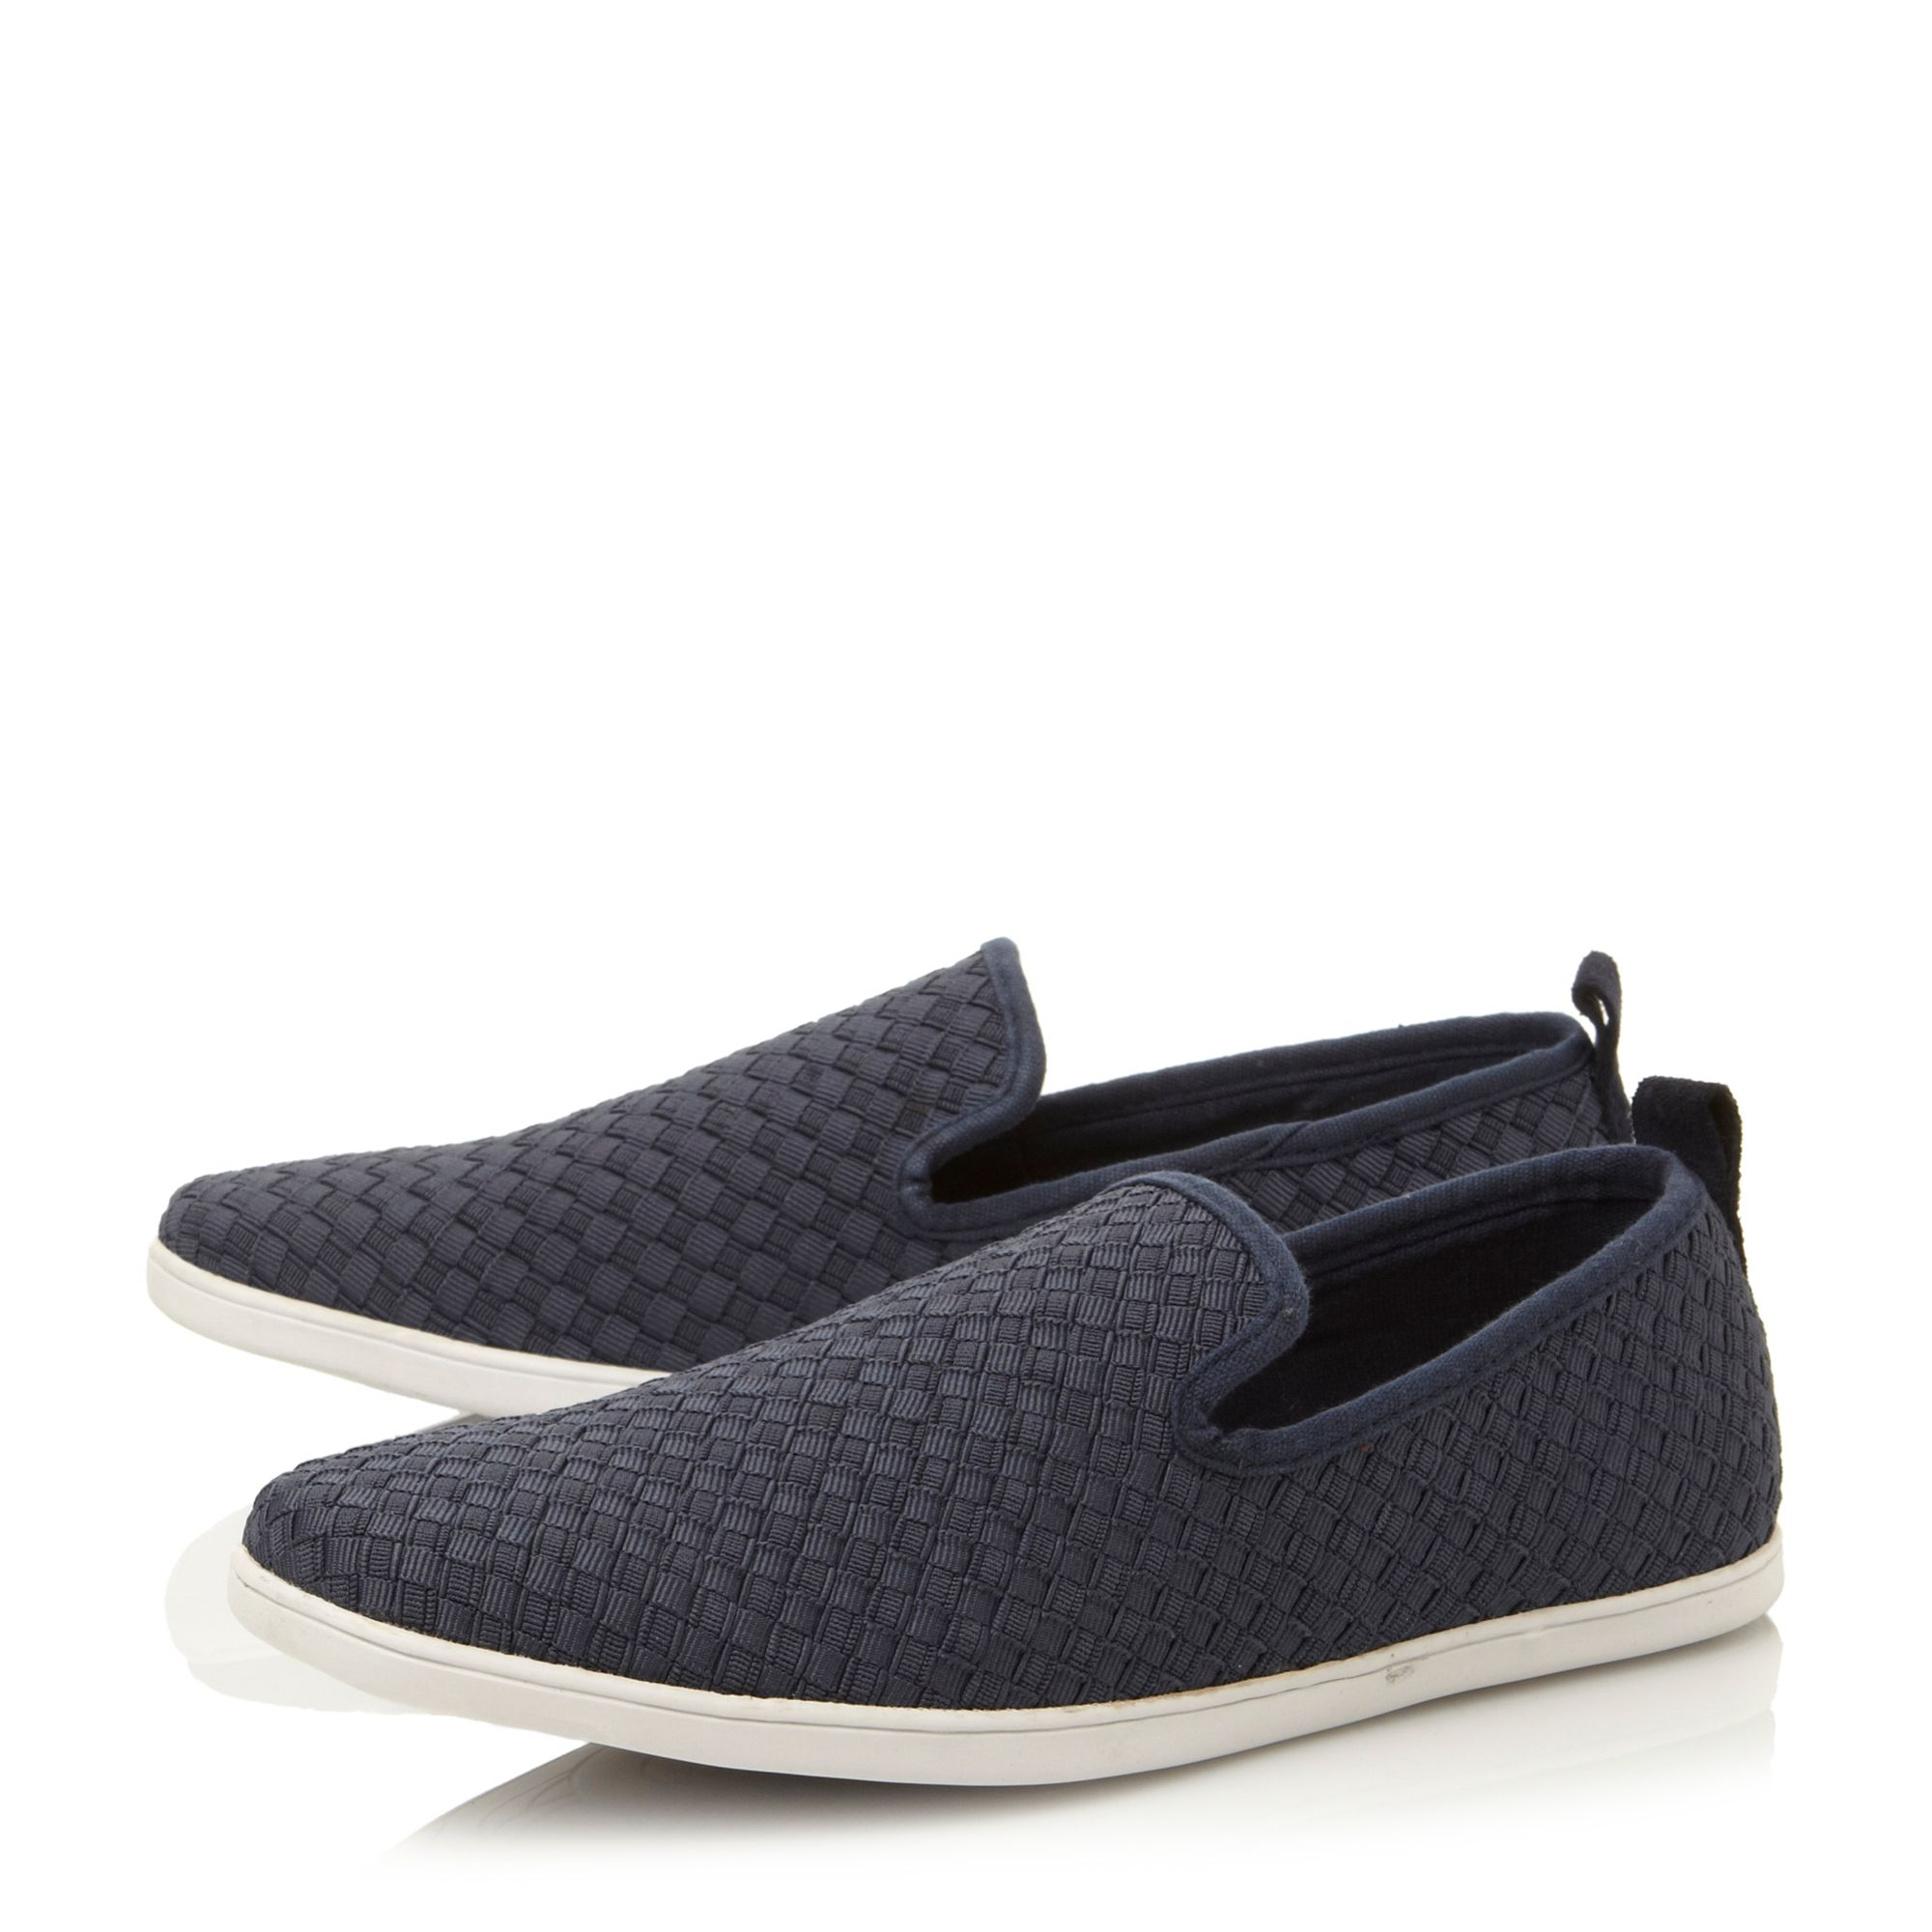 Fawkner textured print slip on shoes